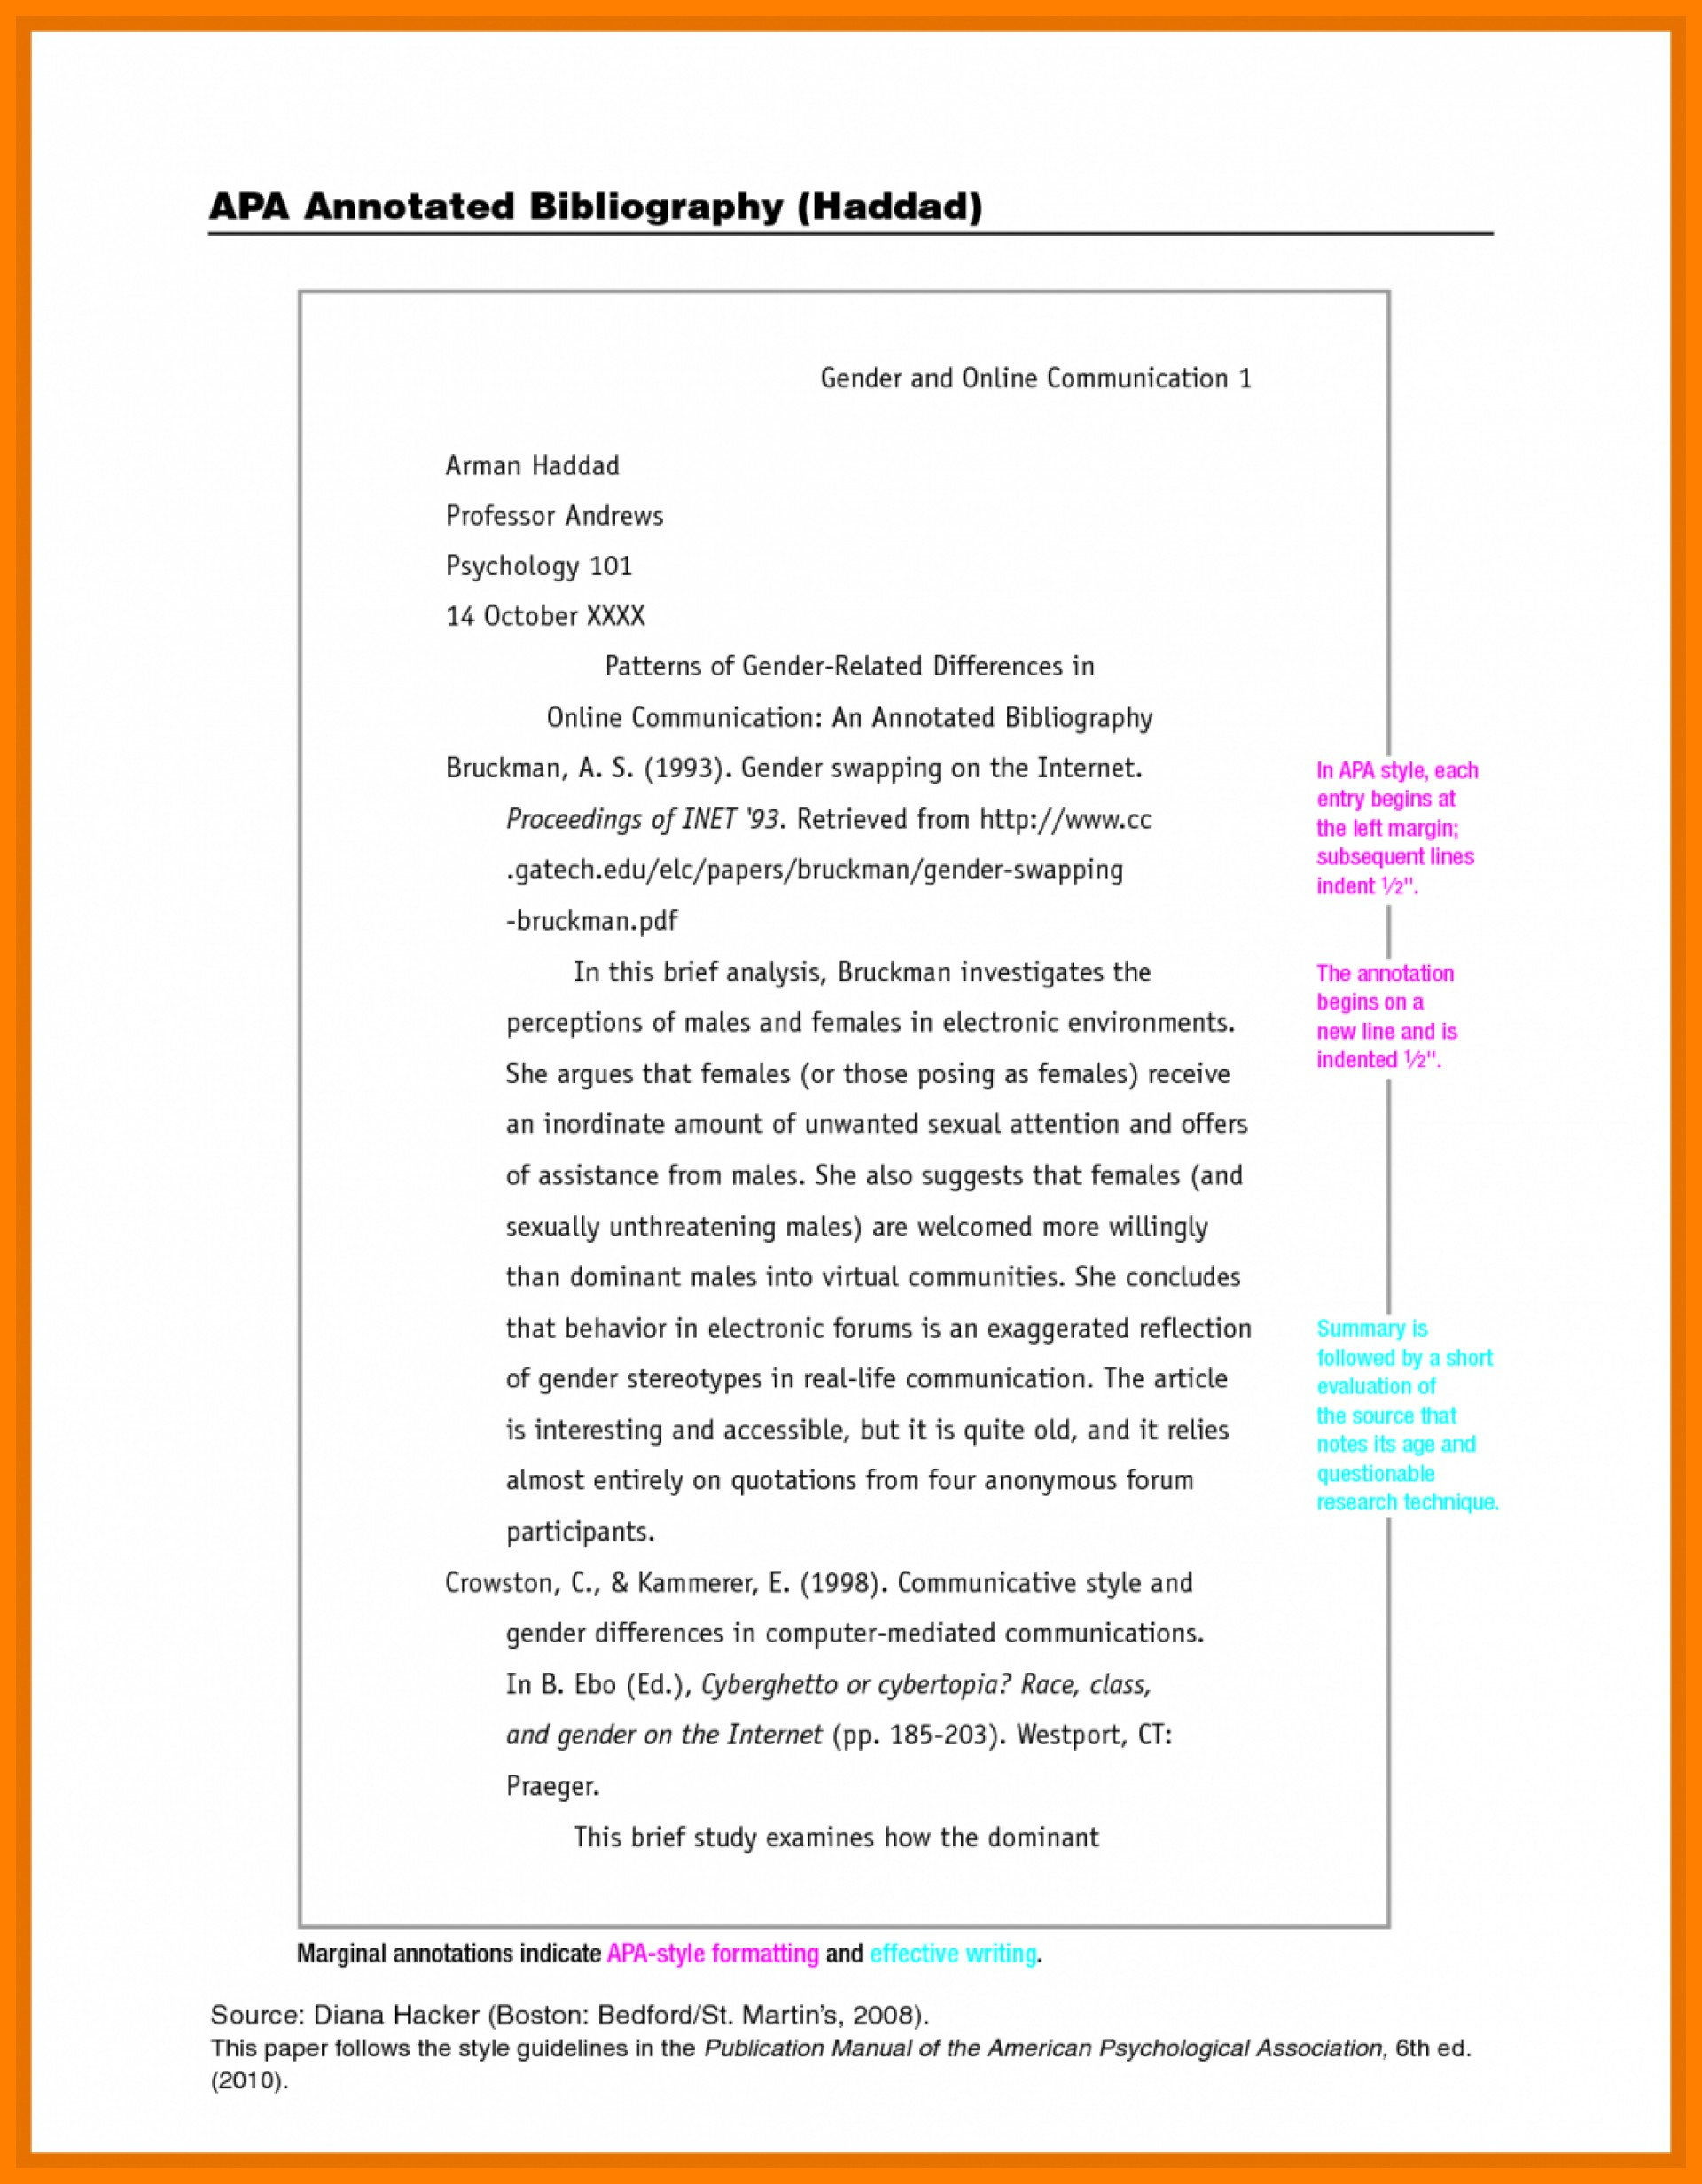 011 Asa Essay Format Example Samples Texas Tech Rehab Counseling Sample Research Paper Remarkable Reference Citation Website For Journal Article 1920